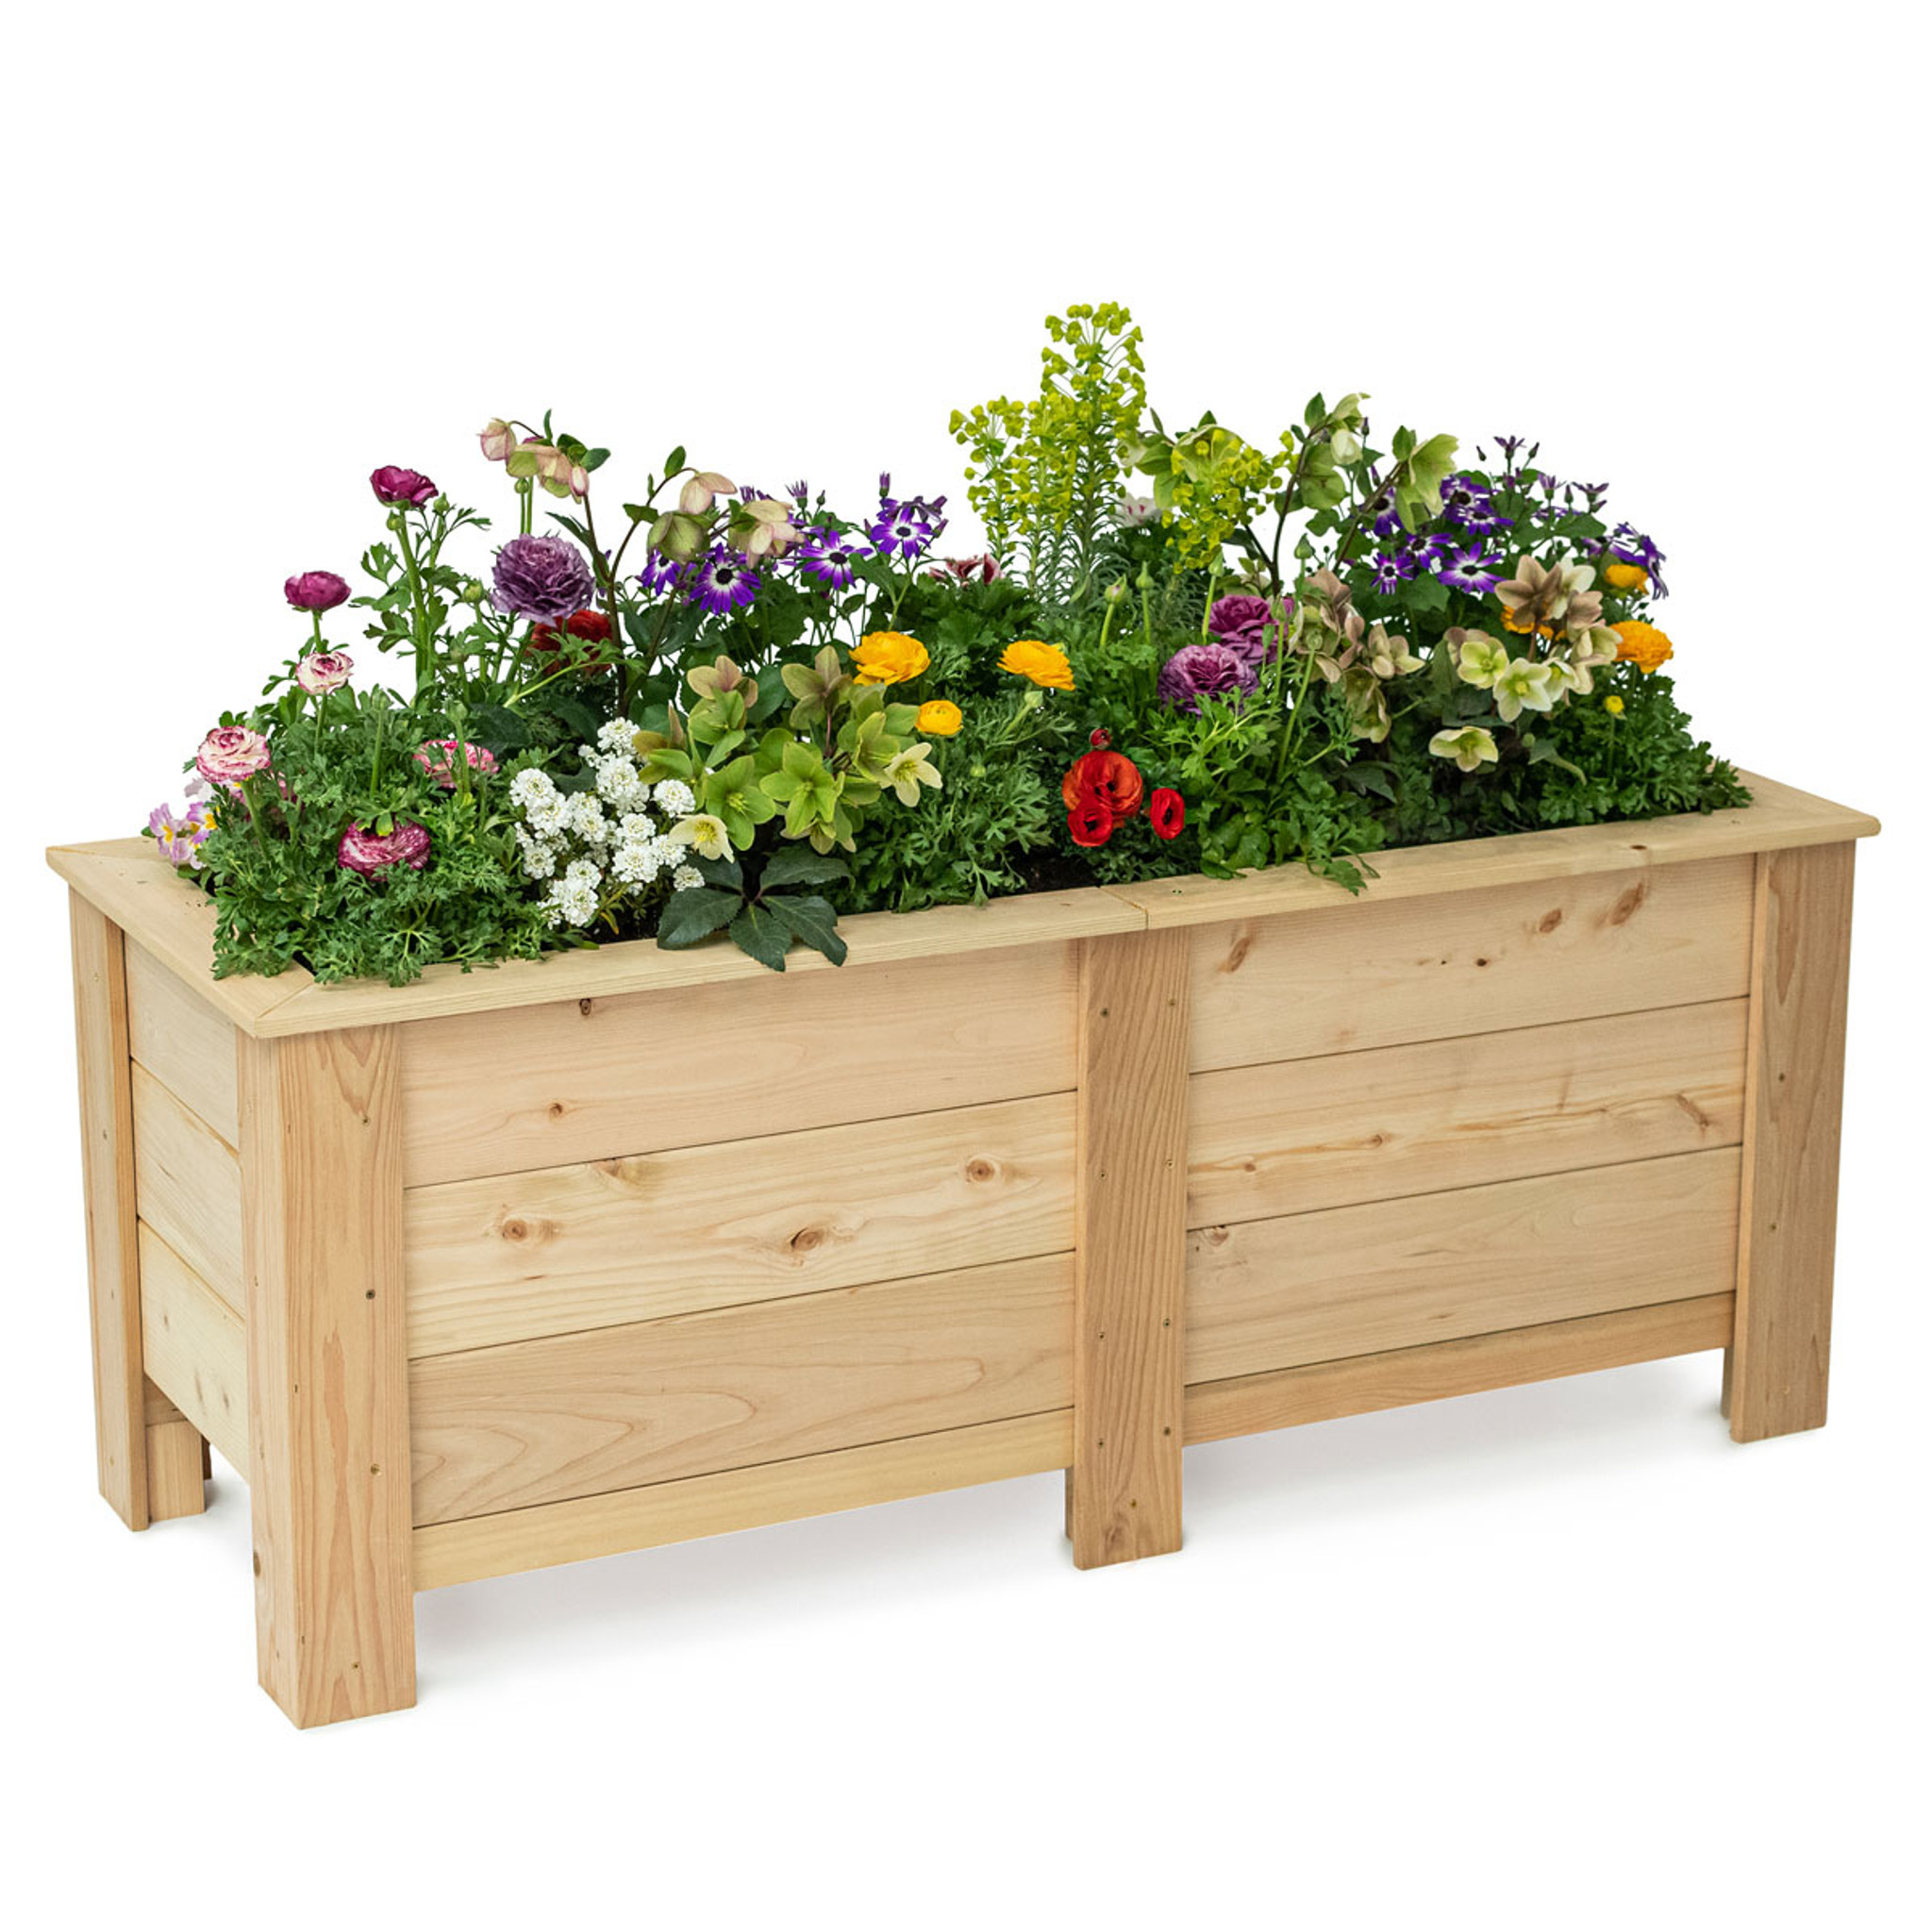 Natural Cedar Planter Boxes Eartheasy Com